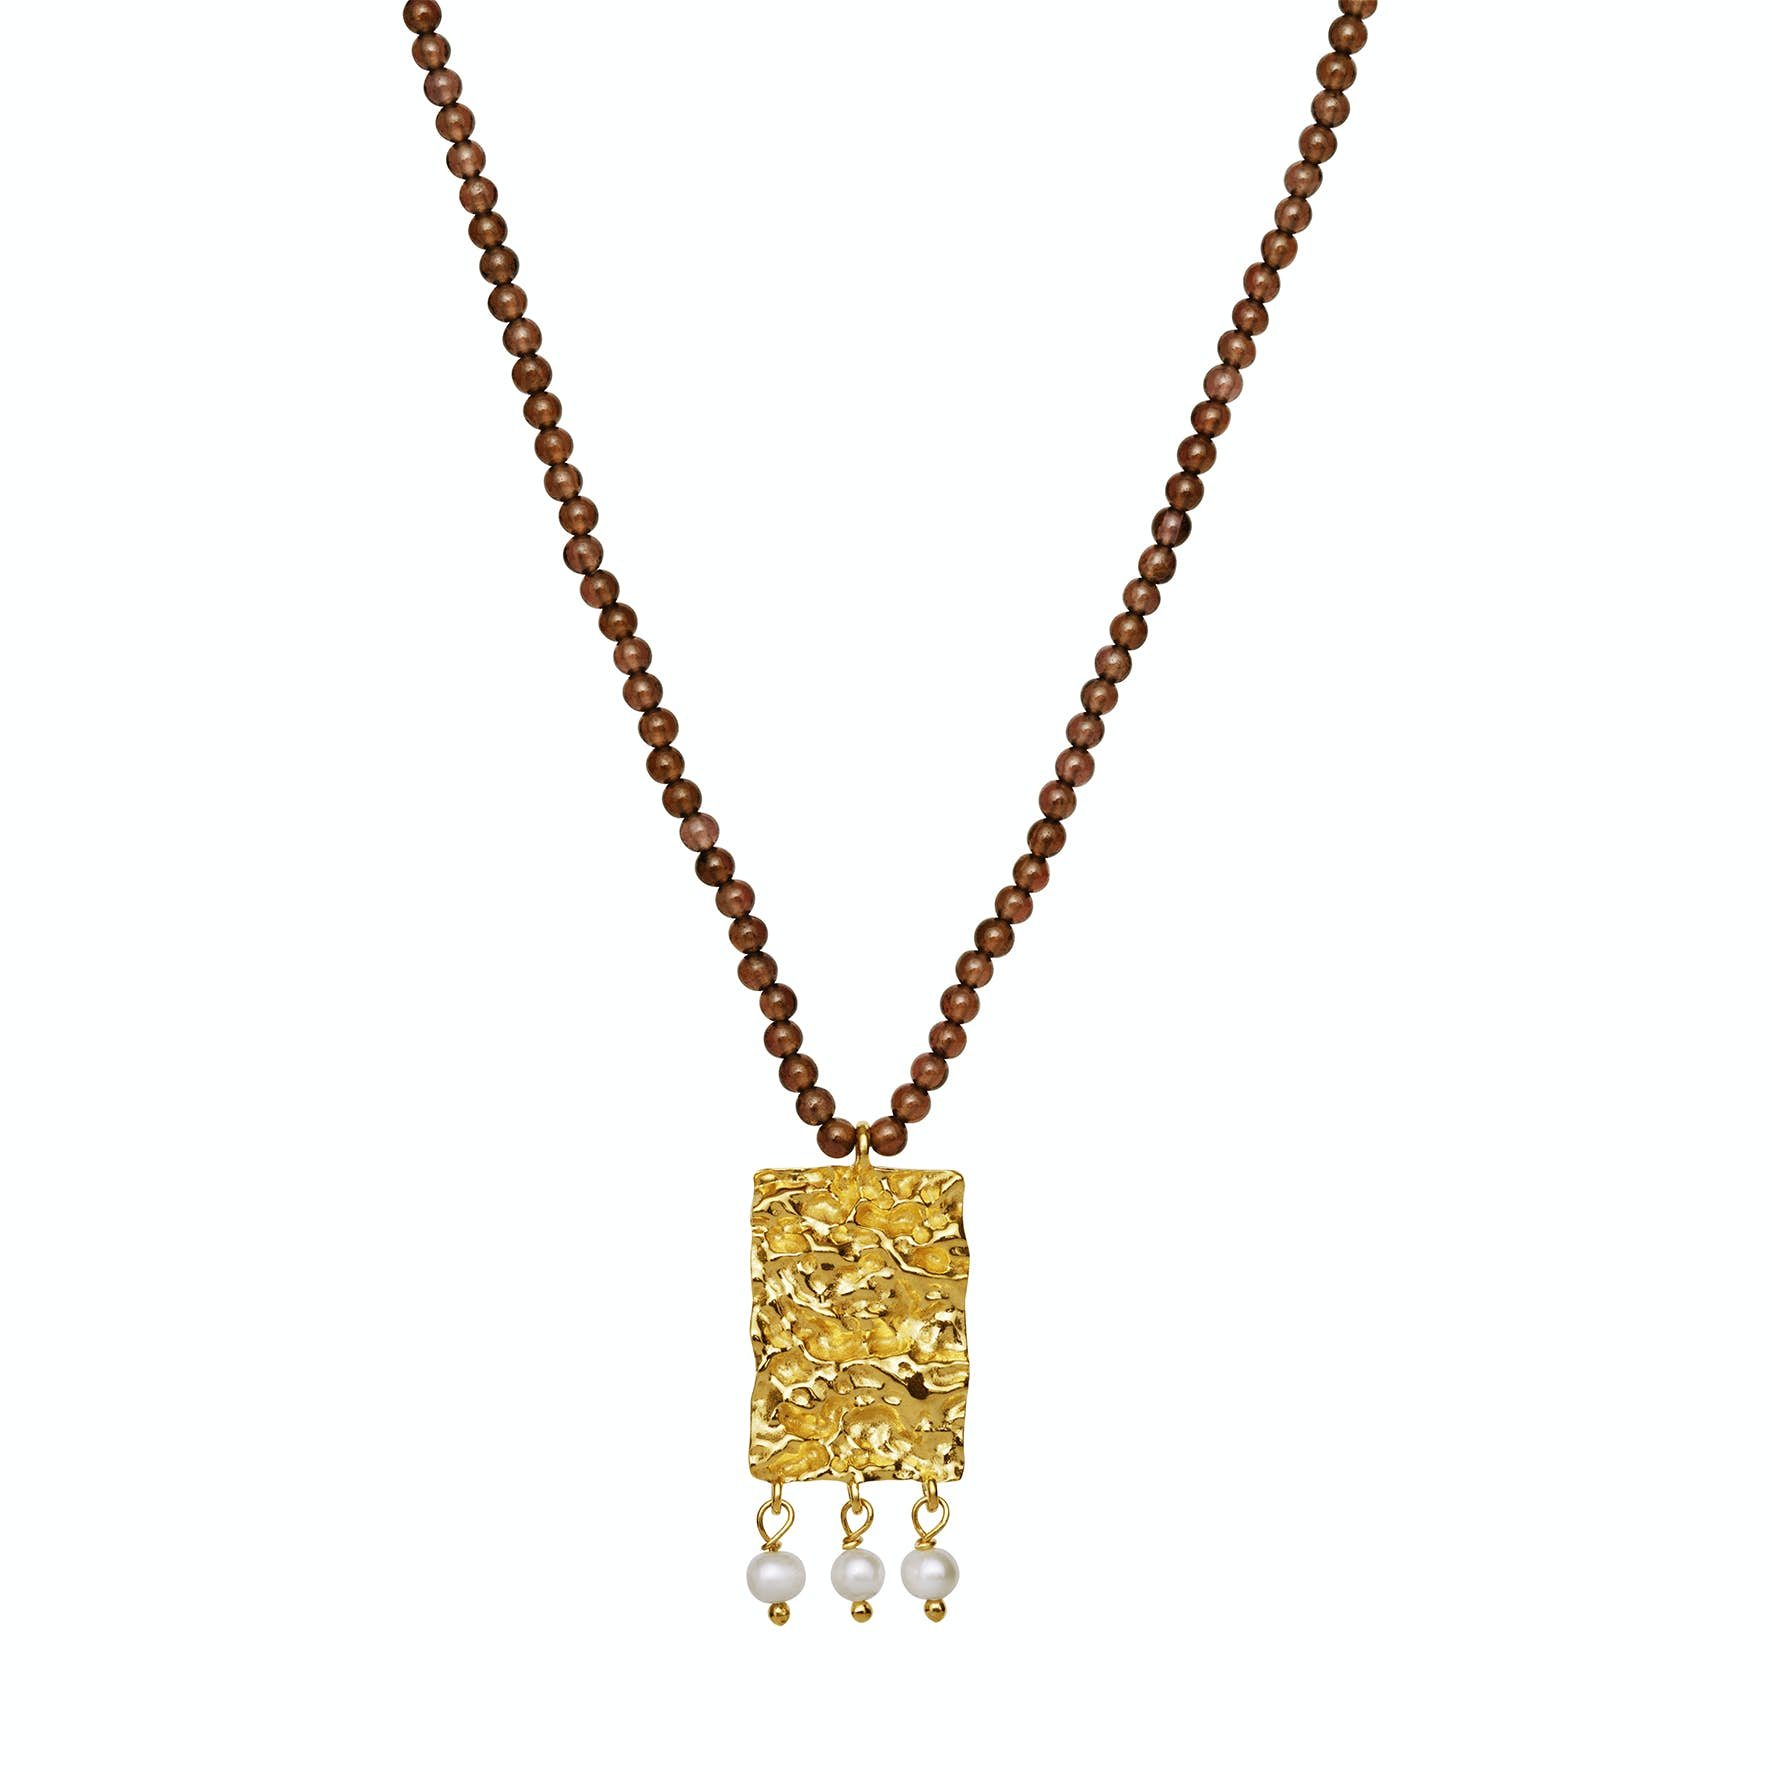 Posy Necklace from Maanesten in Goldplated-Silver Sterling 925 Blank